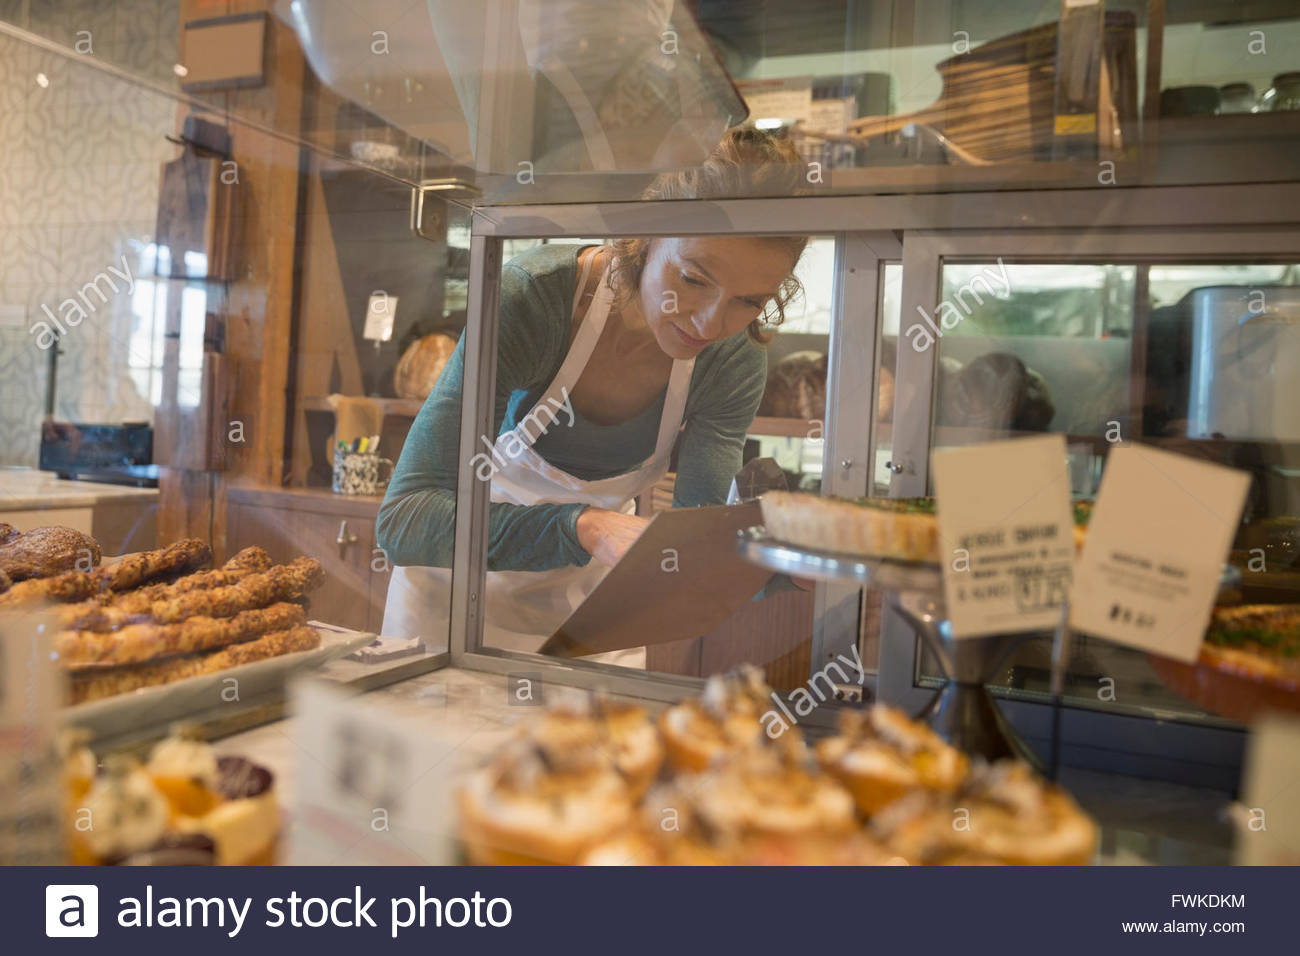 Bakery owner with clipboard checking inventory - Stock Image